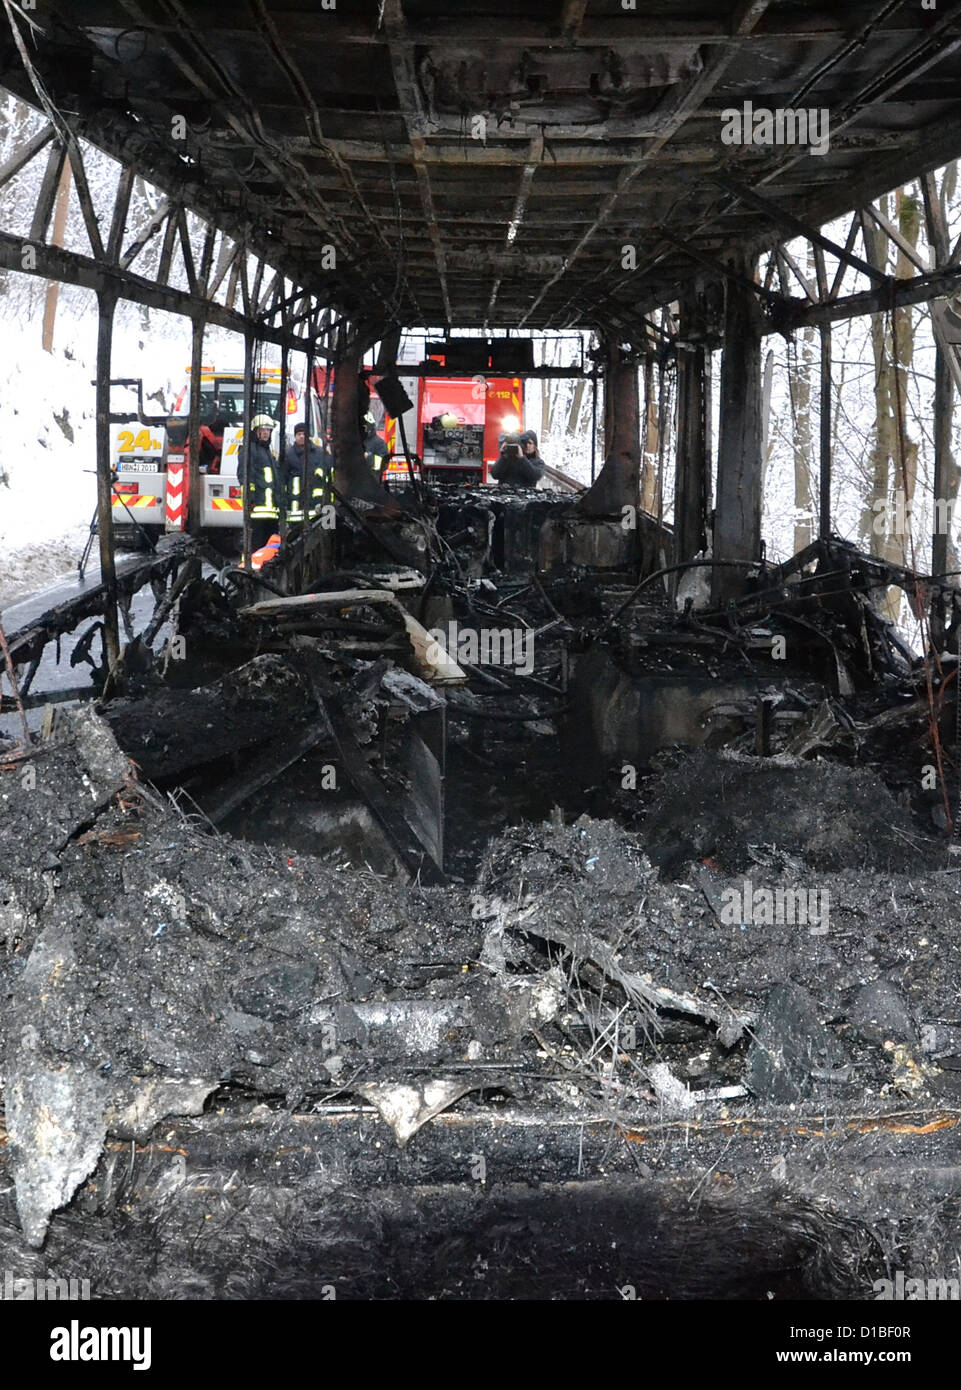 A bus is burnt out completely on a road between Meiningen and Dreissigacker, Germany, 13 december 2012. The bus - Stock Image